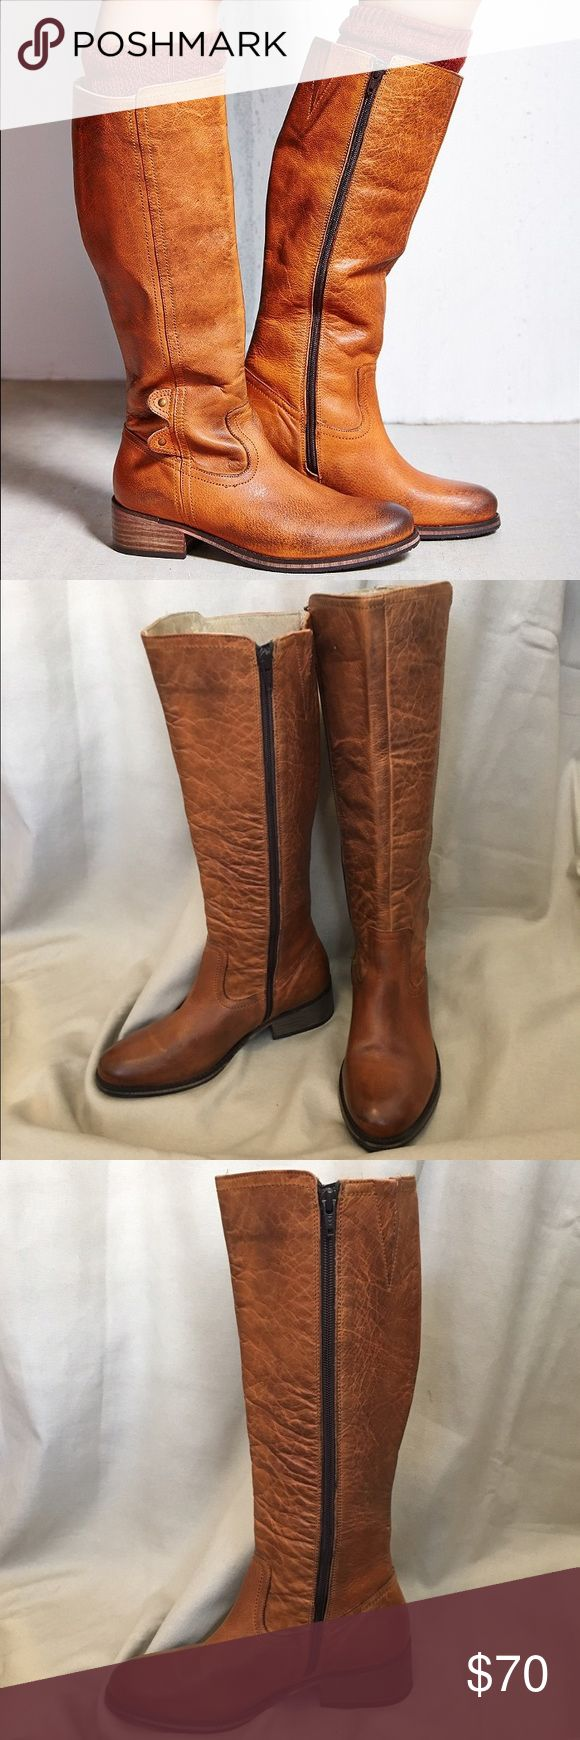 Seychelles Riding Boot 8.5 Never Worn Tall leather, zip-up riding boot by Seychelles- excellent condition, never worn. Seychelles Shoes Combat & Moto Boots